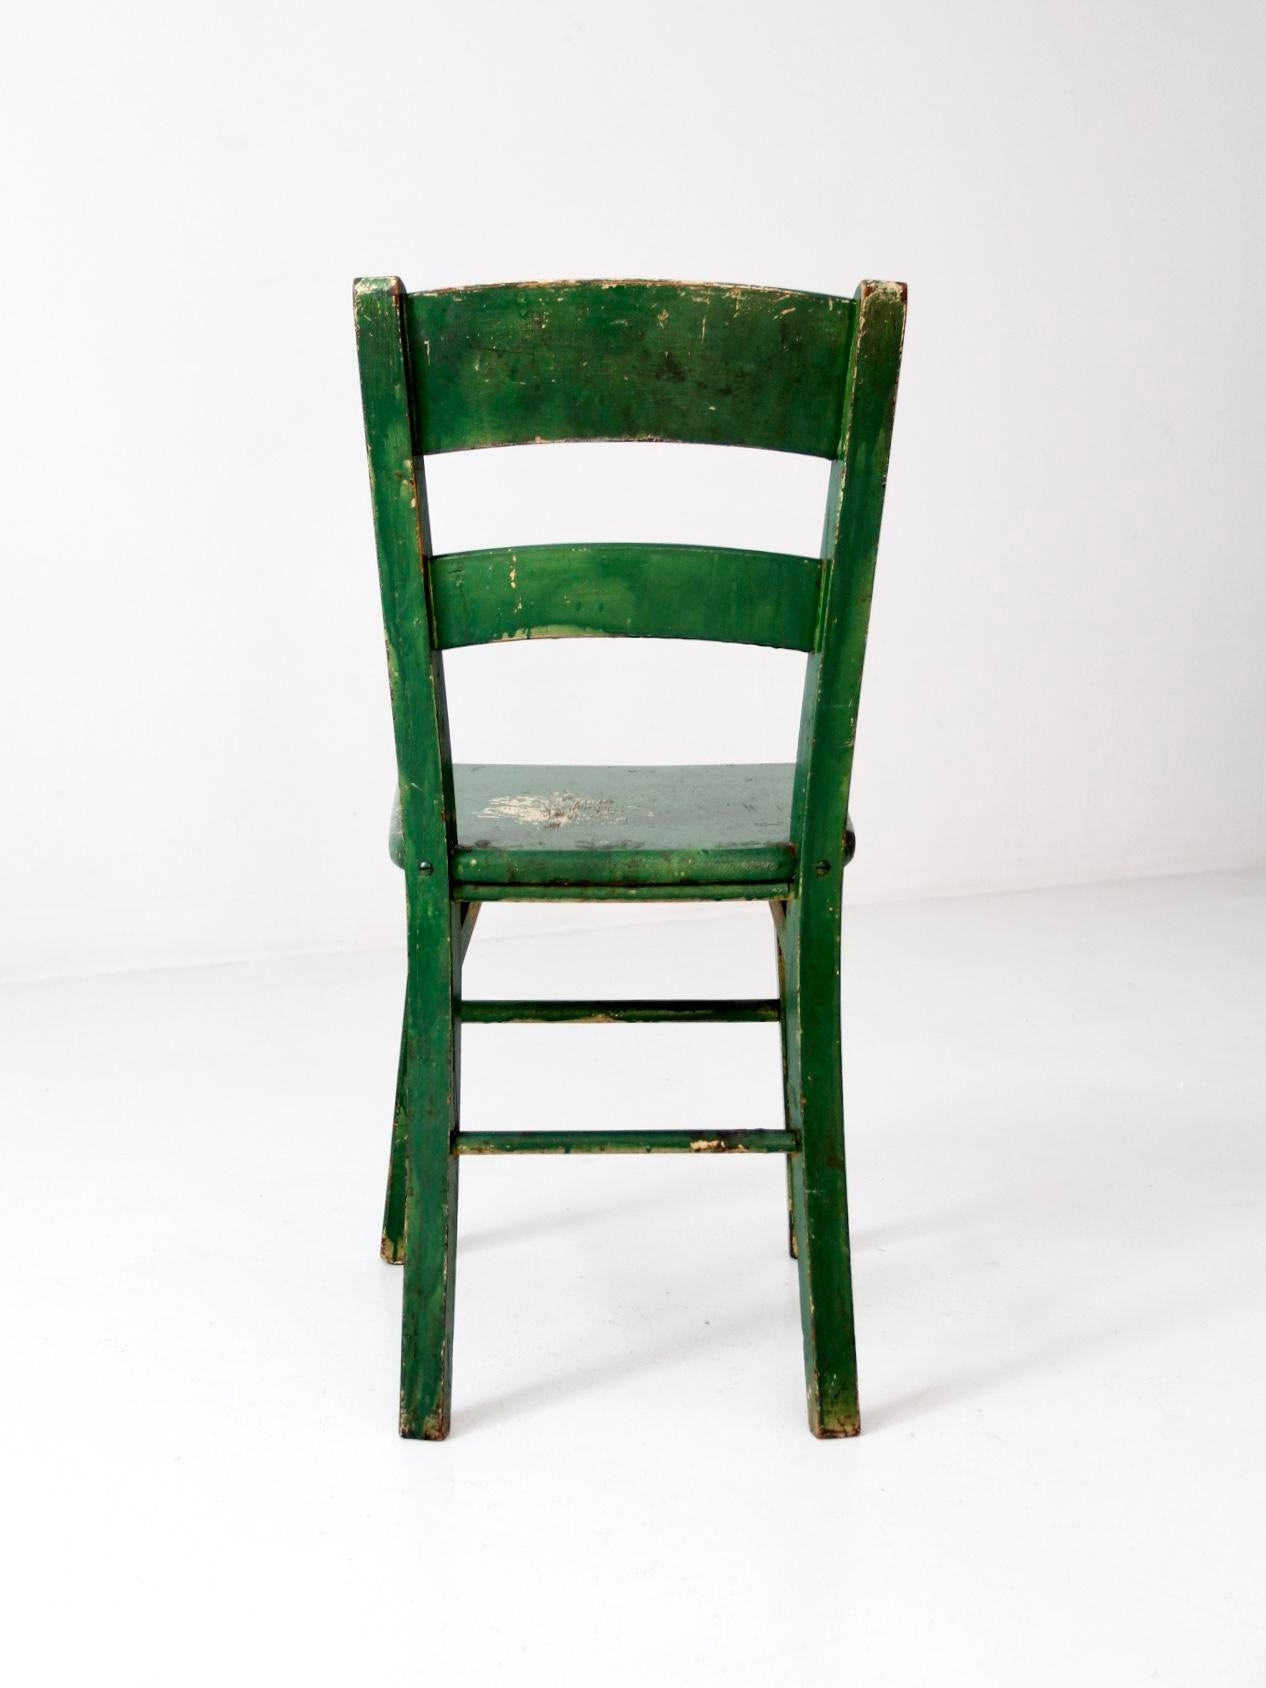 This Is A Vintage Painted Wood Chair Circa Early 20th Century. Original,  Vibrant Green